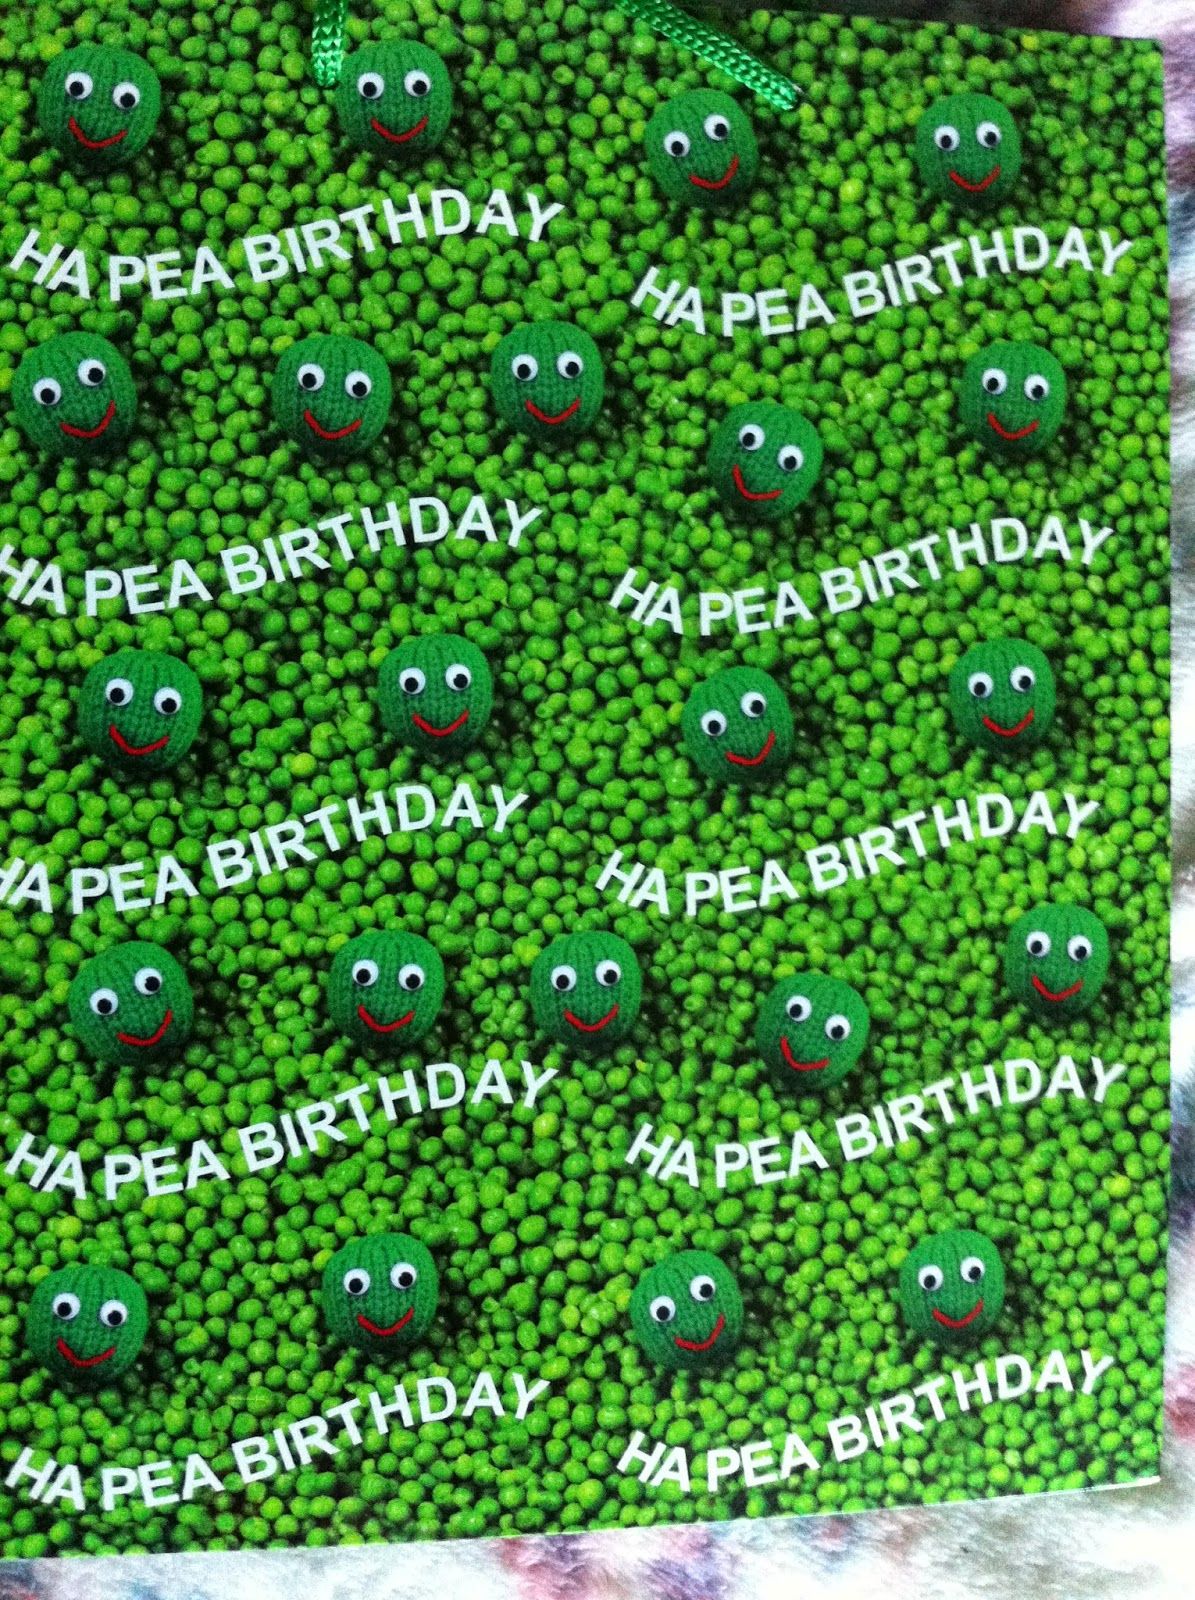 Ha Pea Birthday Bag